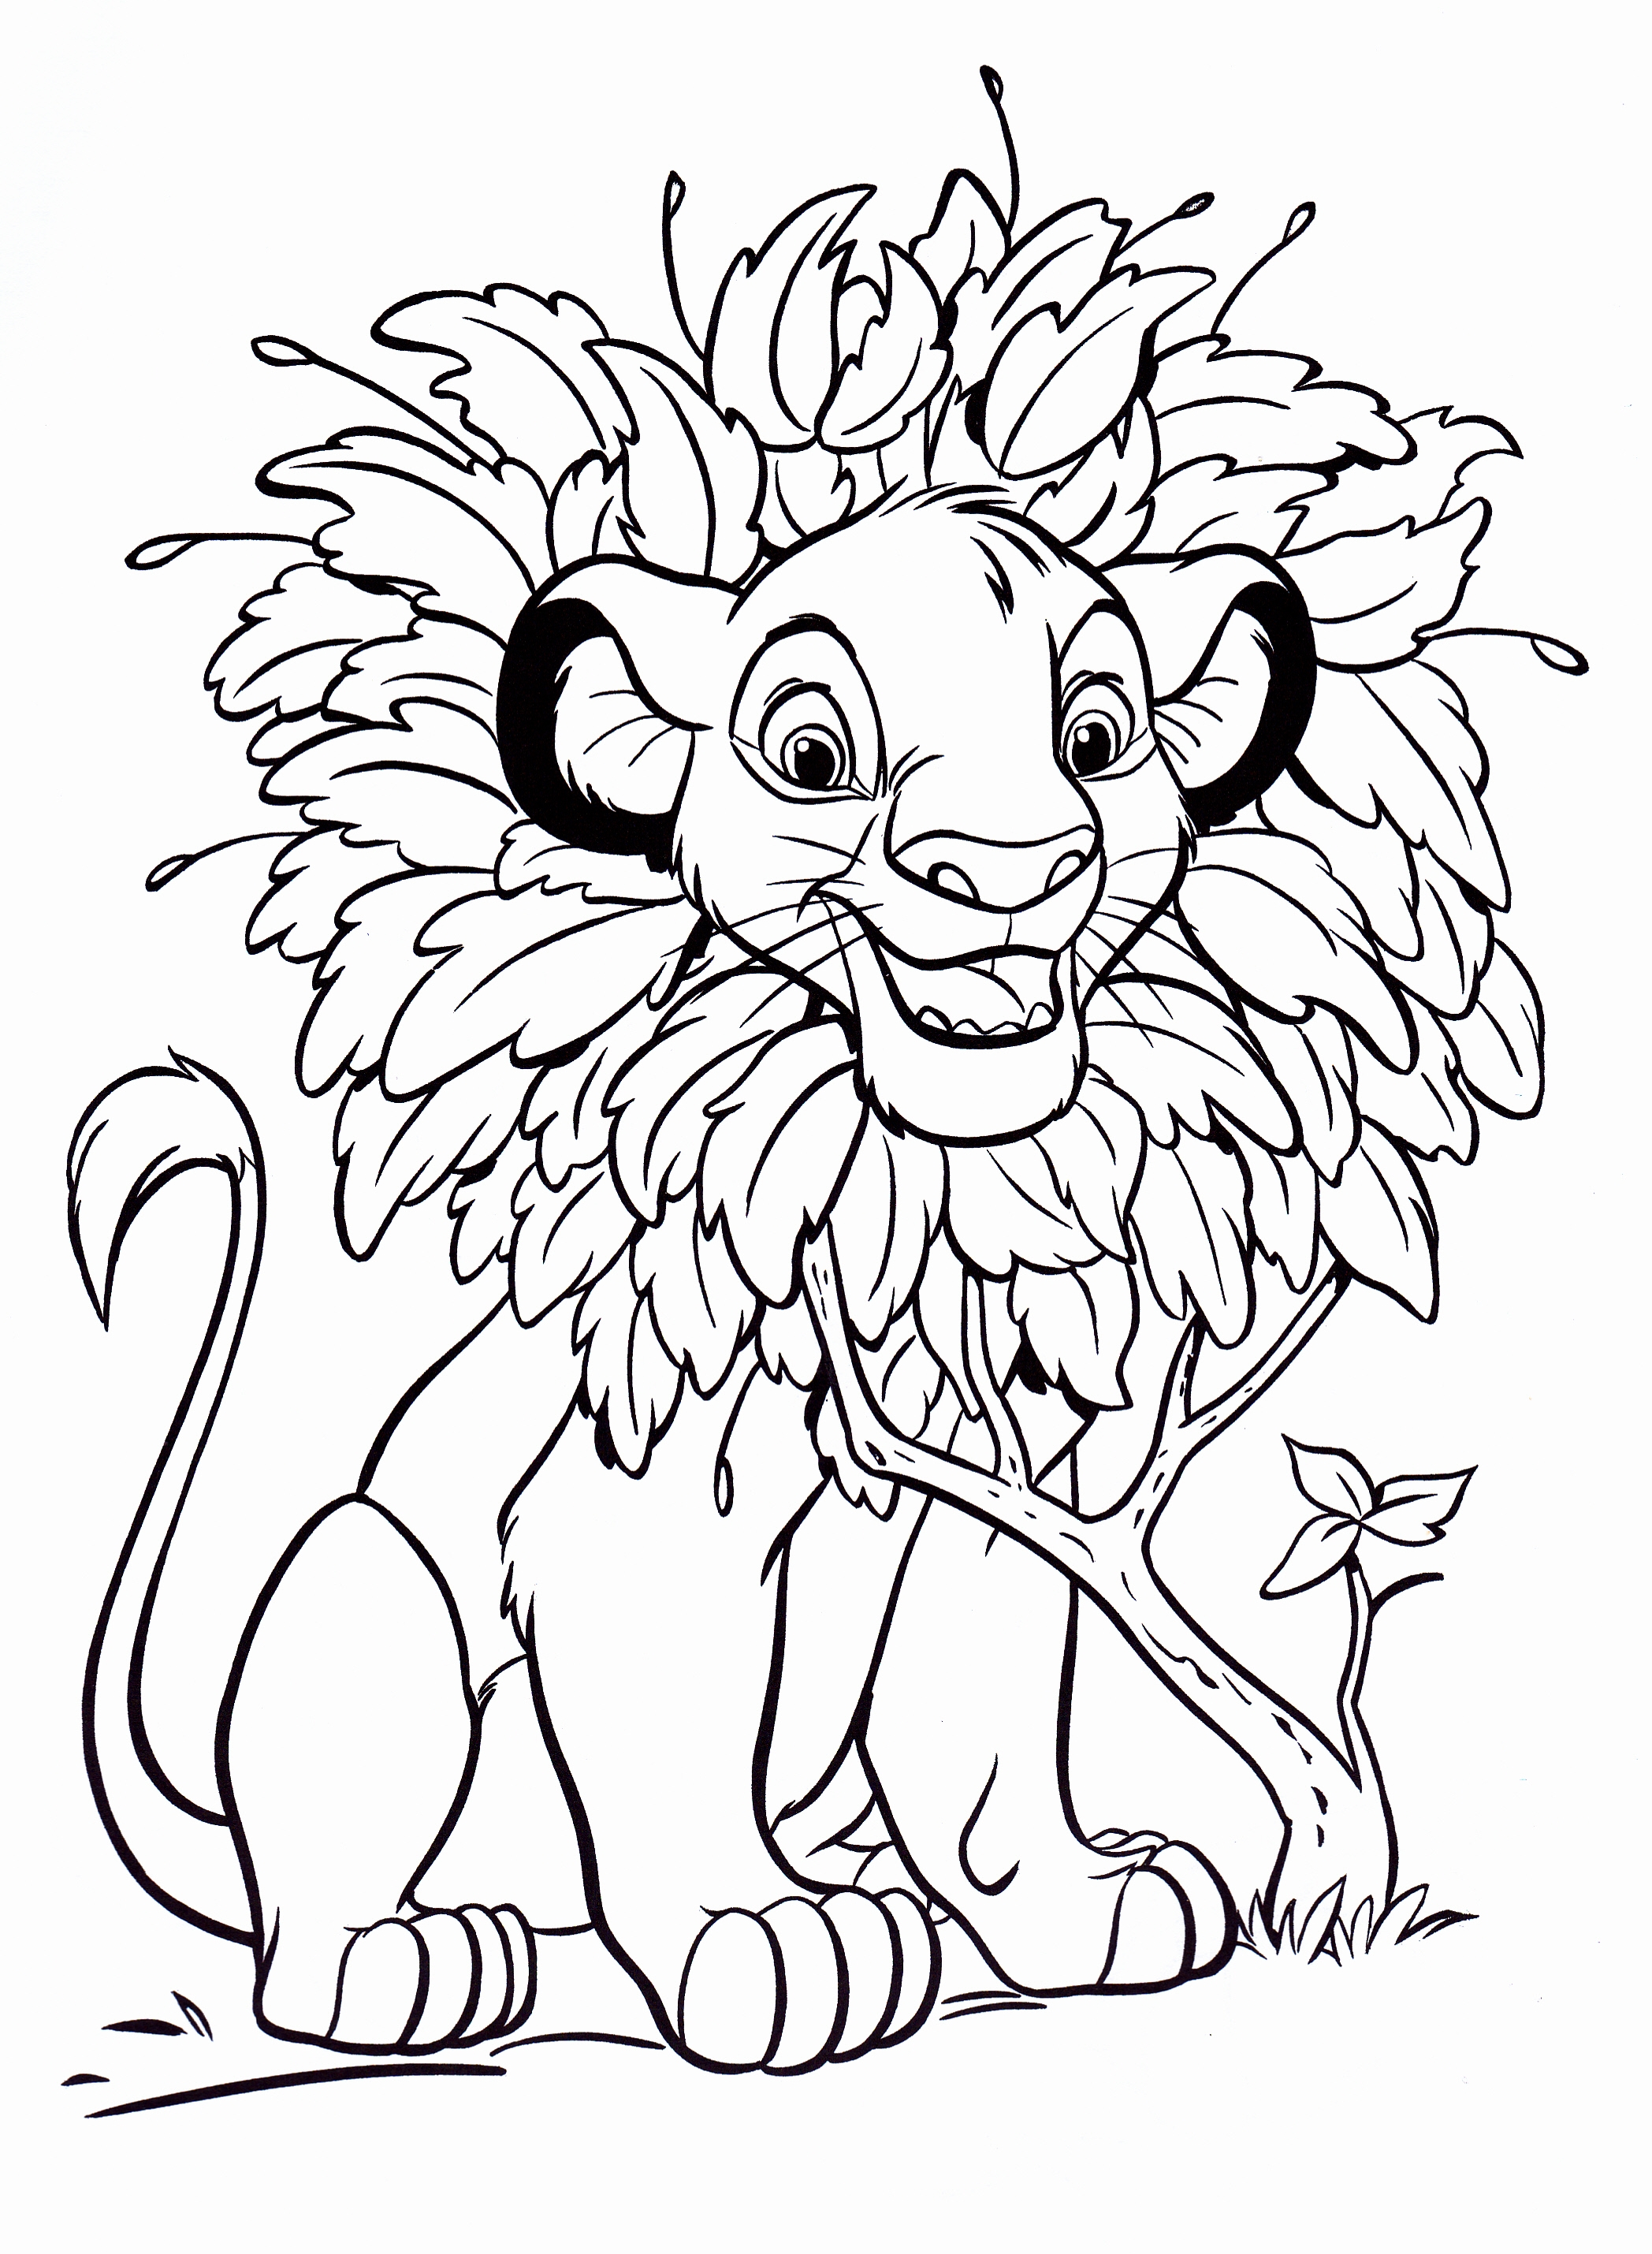 Disney Coloring Pages (9) - Coloring Kids